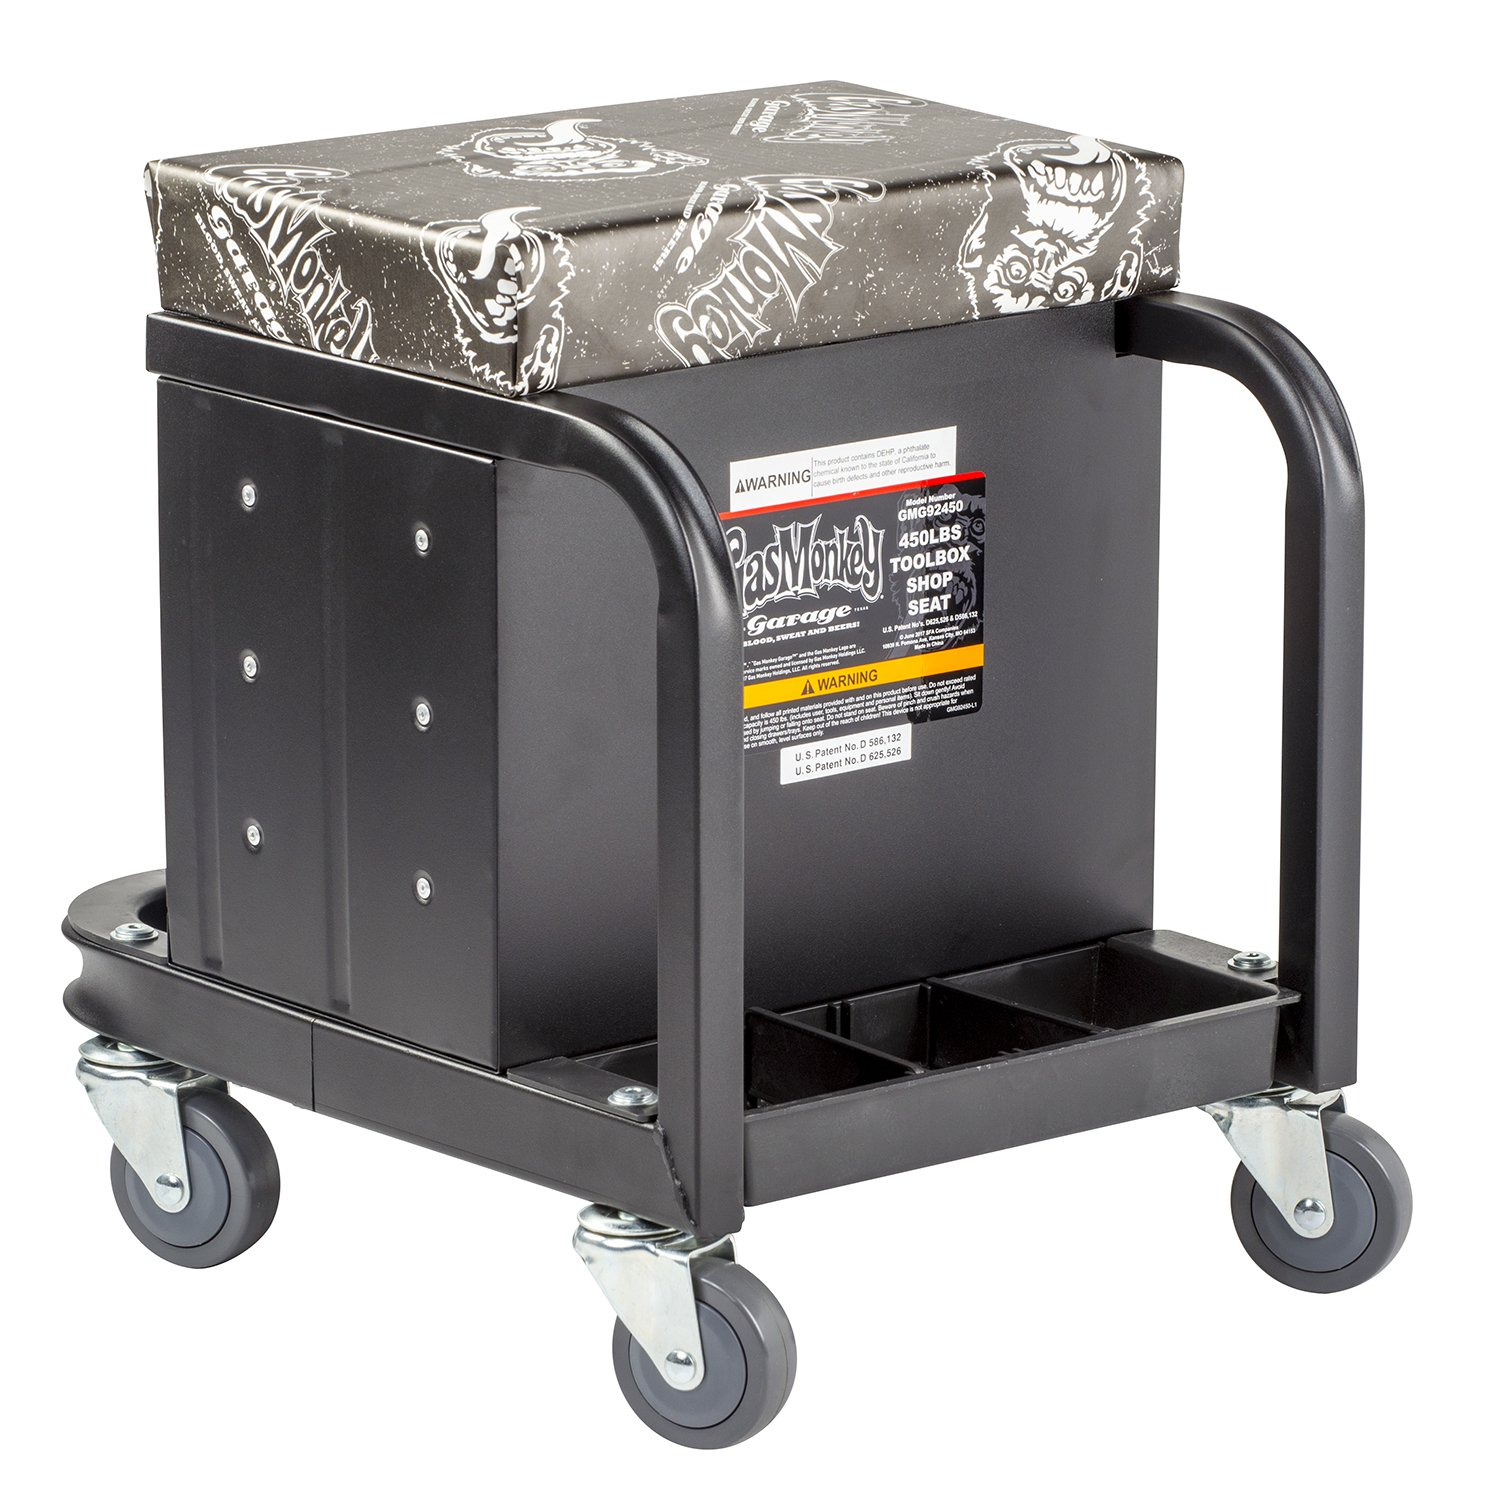 Gas Monkey Creeper Seat and Tool Box Combo - 3-Drawers Toolbox with 4 Rolling Casters - 450 Lbs Capacity by Gas Monkey (Image #5)